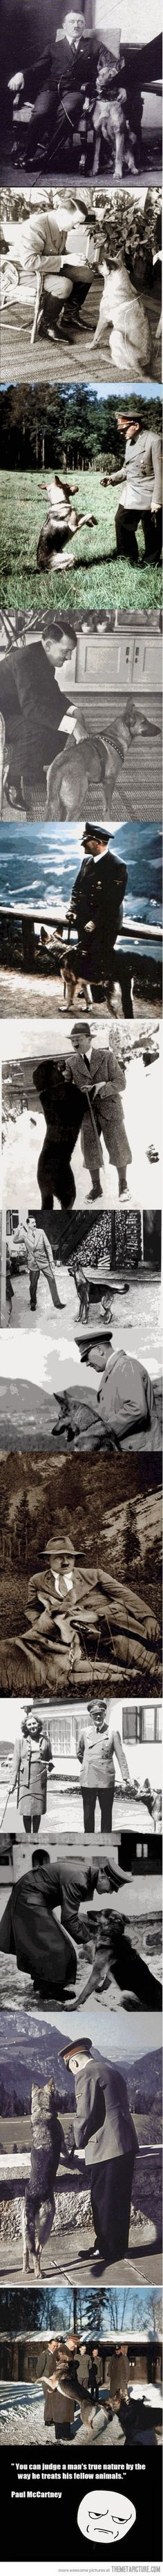 A dictator and his dog ,Hitler tested the cyanide he used in conjunction with a bullet to his brain on his dog before using it on himself because he wanted to be sure it would kill him, he poisoned his beloved pet not knowing if it would be successful or just leave him suffering in an attempt to ease his own passing because he feared retribution... he was an evil prick.